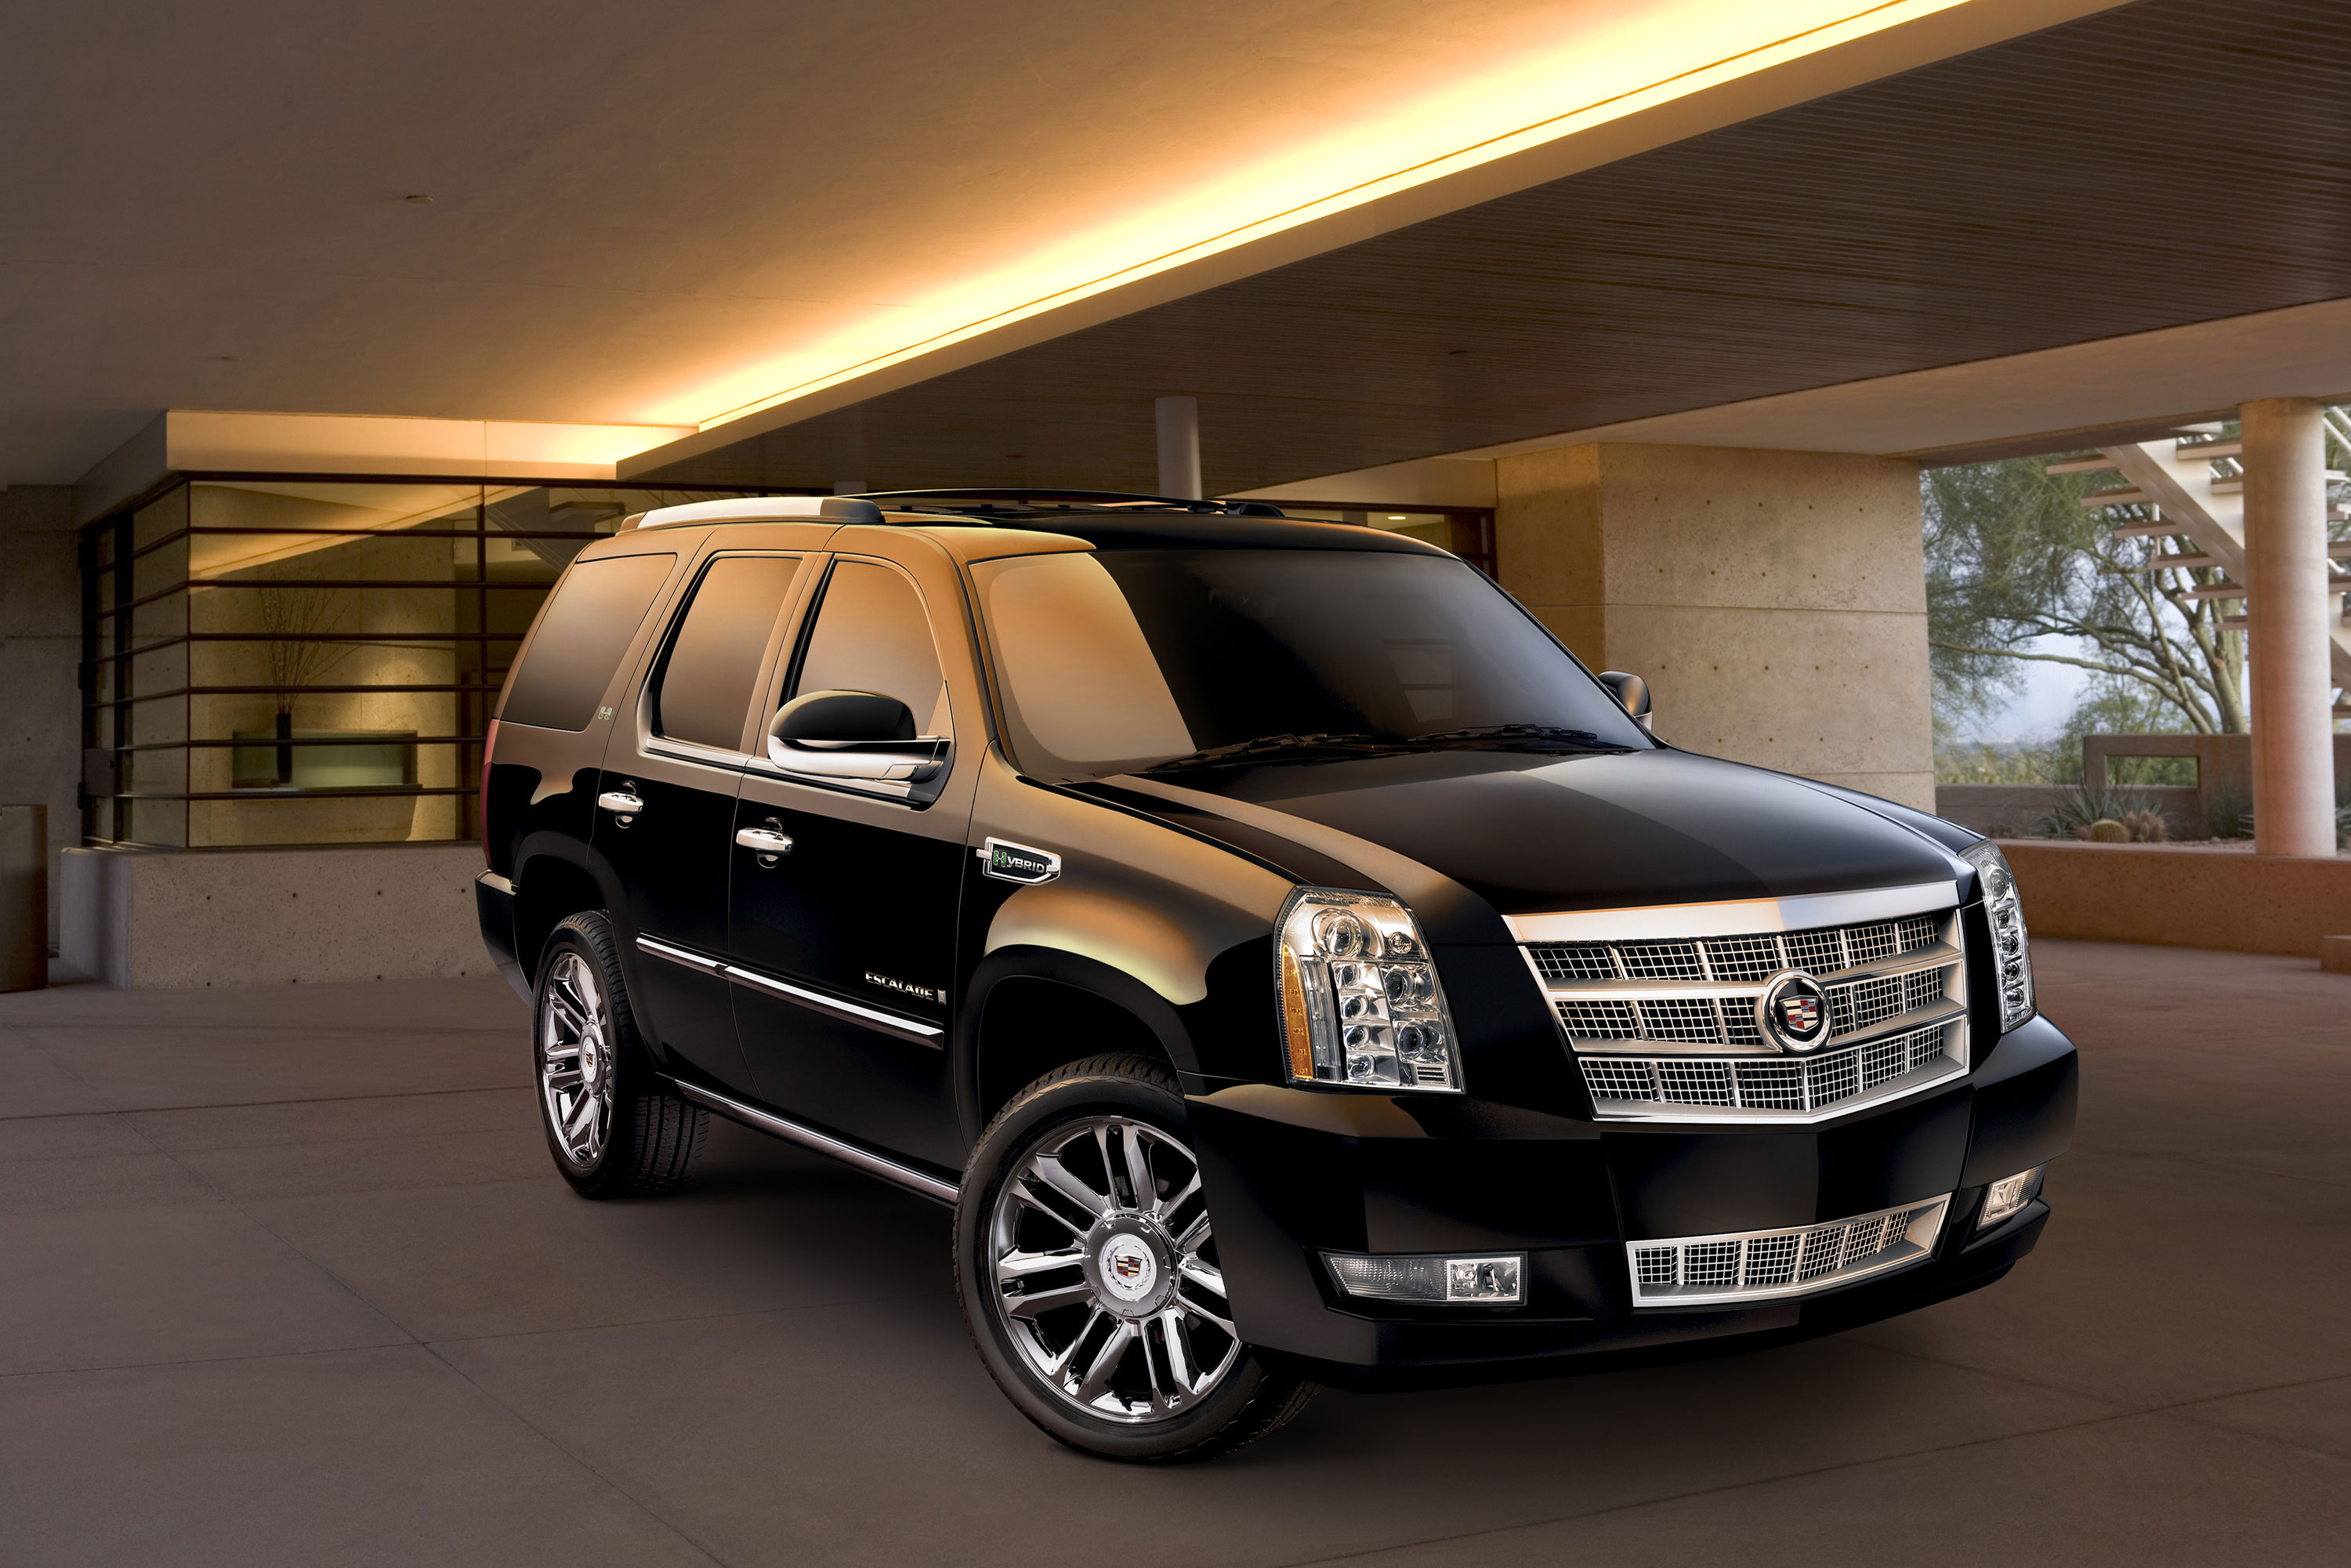 Buy 2014 Cadillac Escalade Hagerstown MD  Aheartlikeherscom